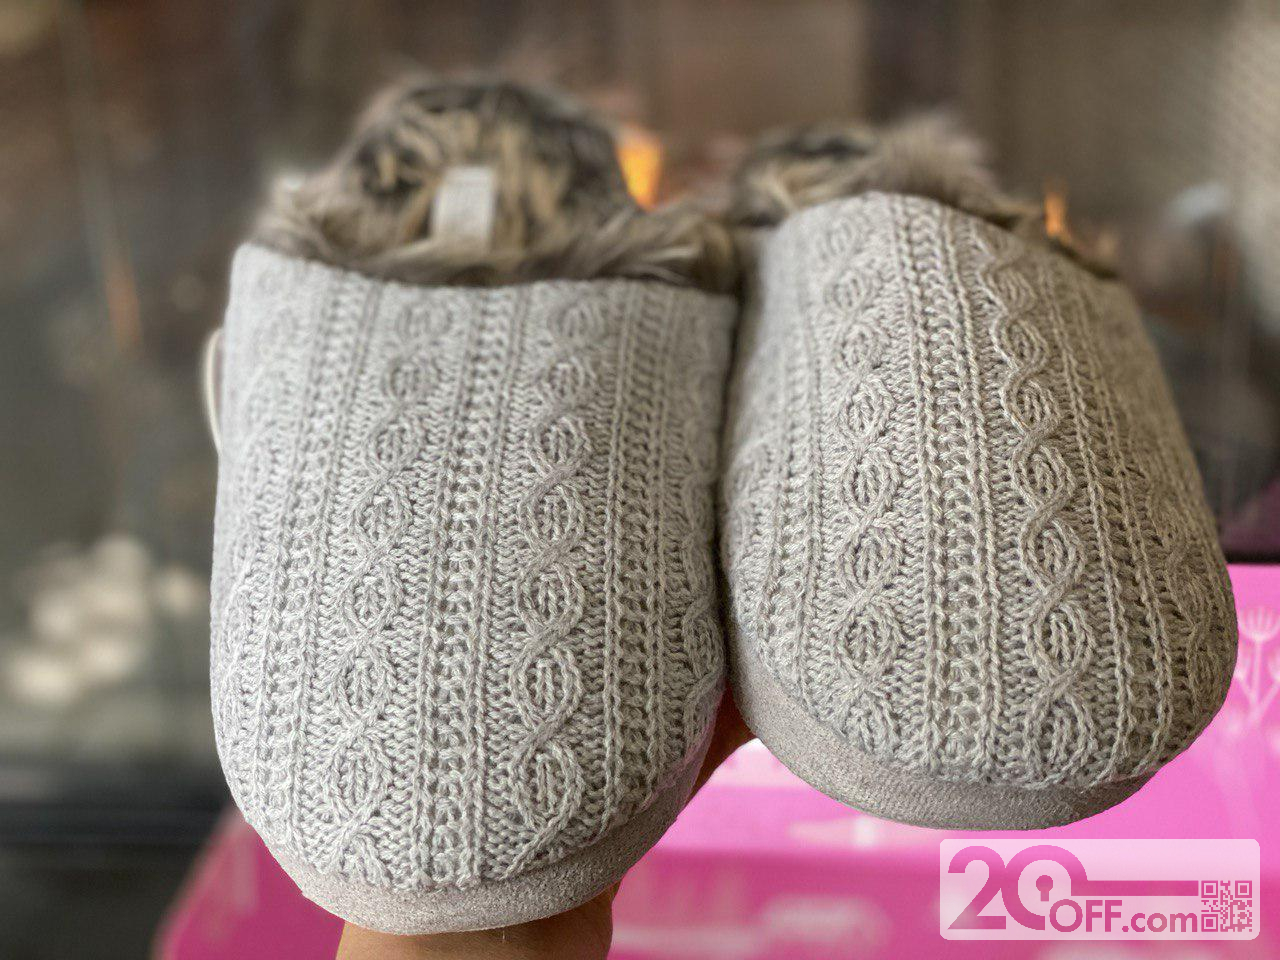 FabFitFun Cute Warm Slippers